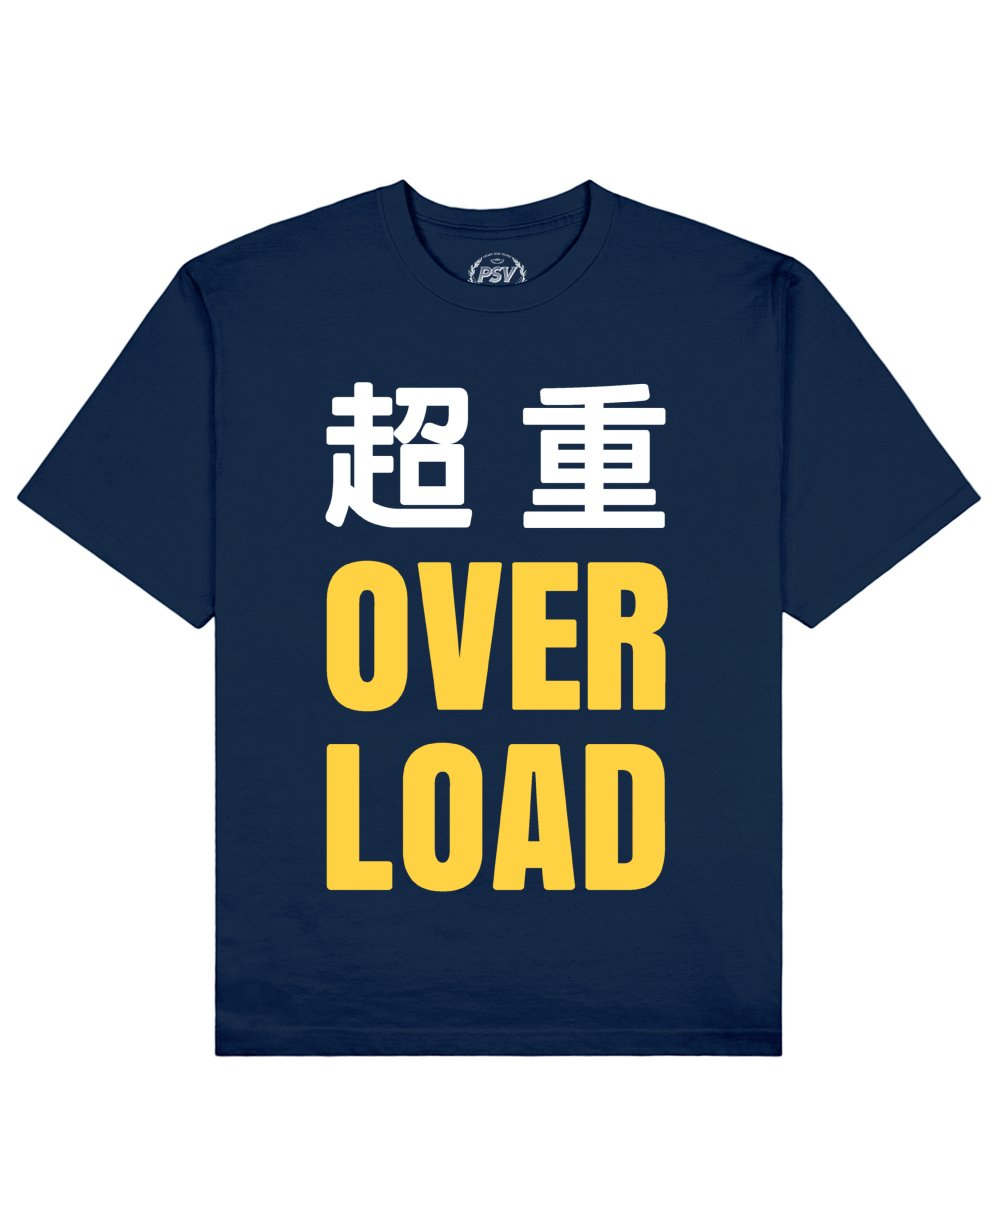 Overload Print T-Shirt in Blue - T-Shirts - PSV - BRANMA